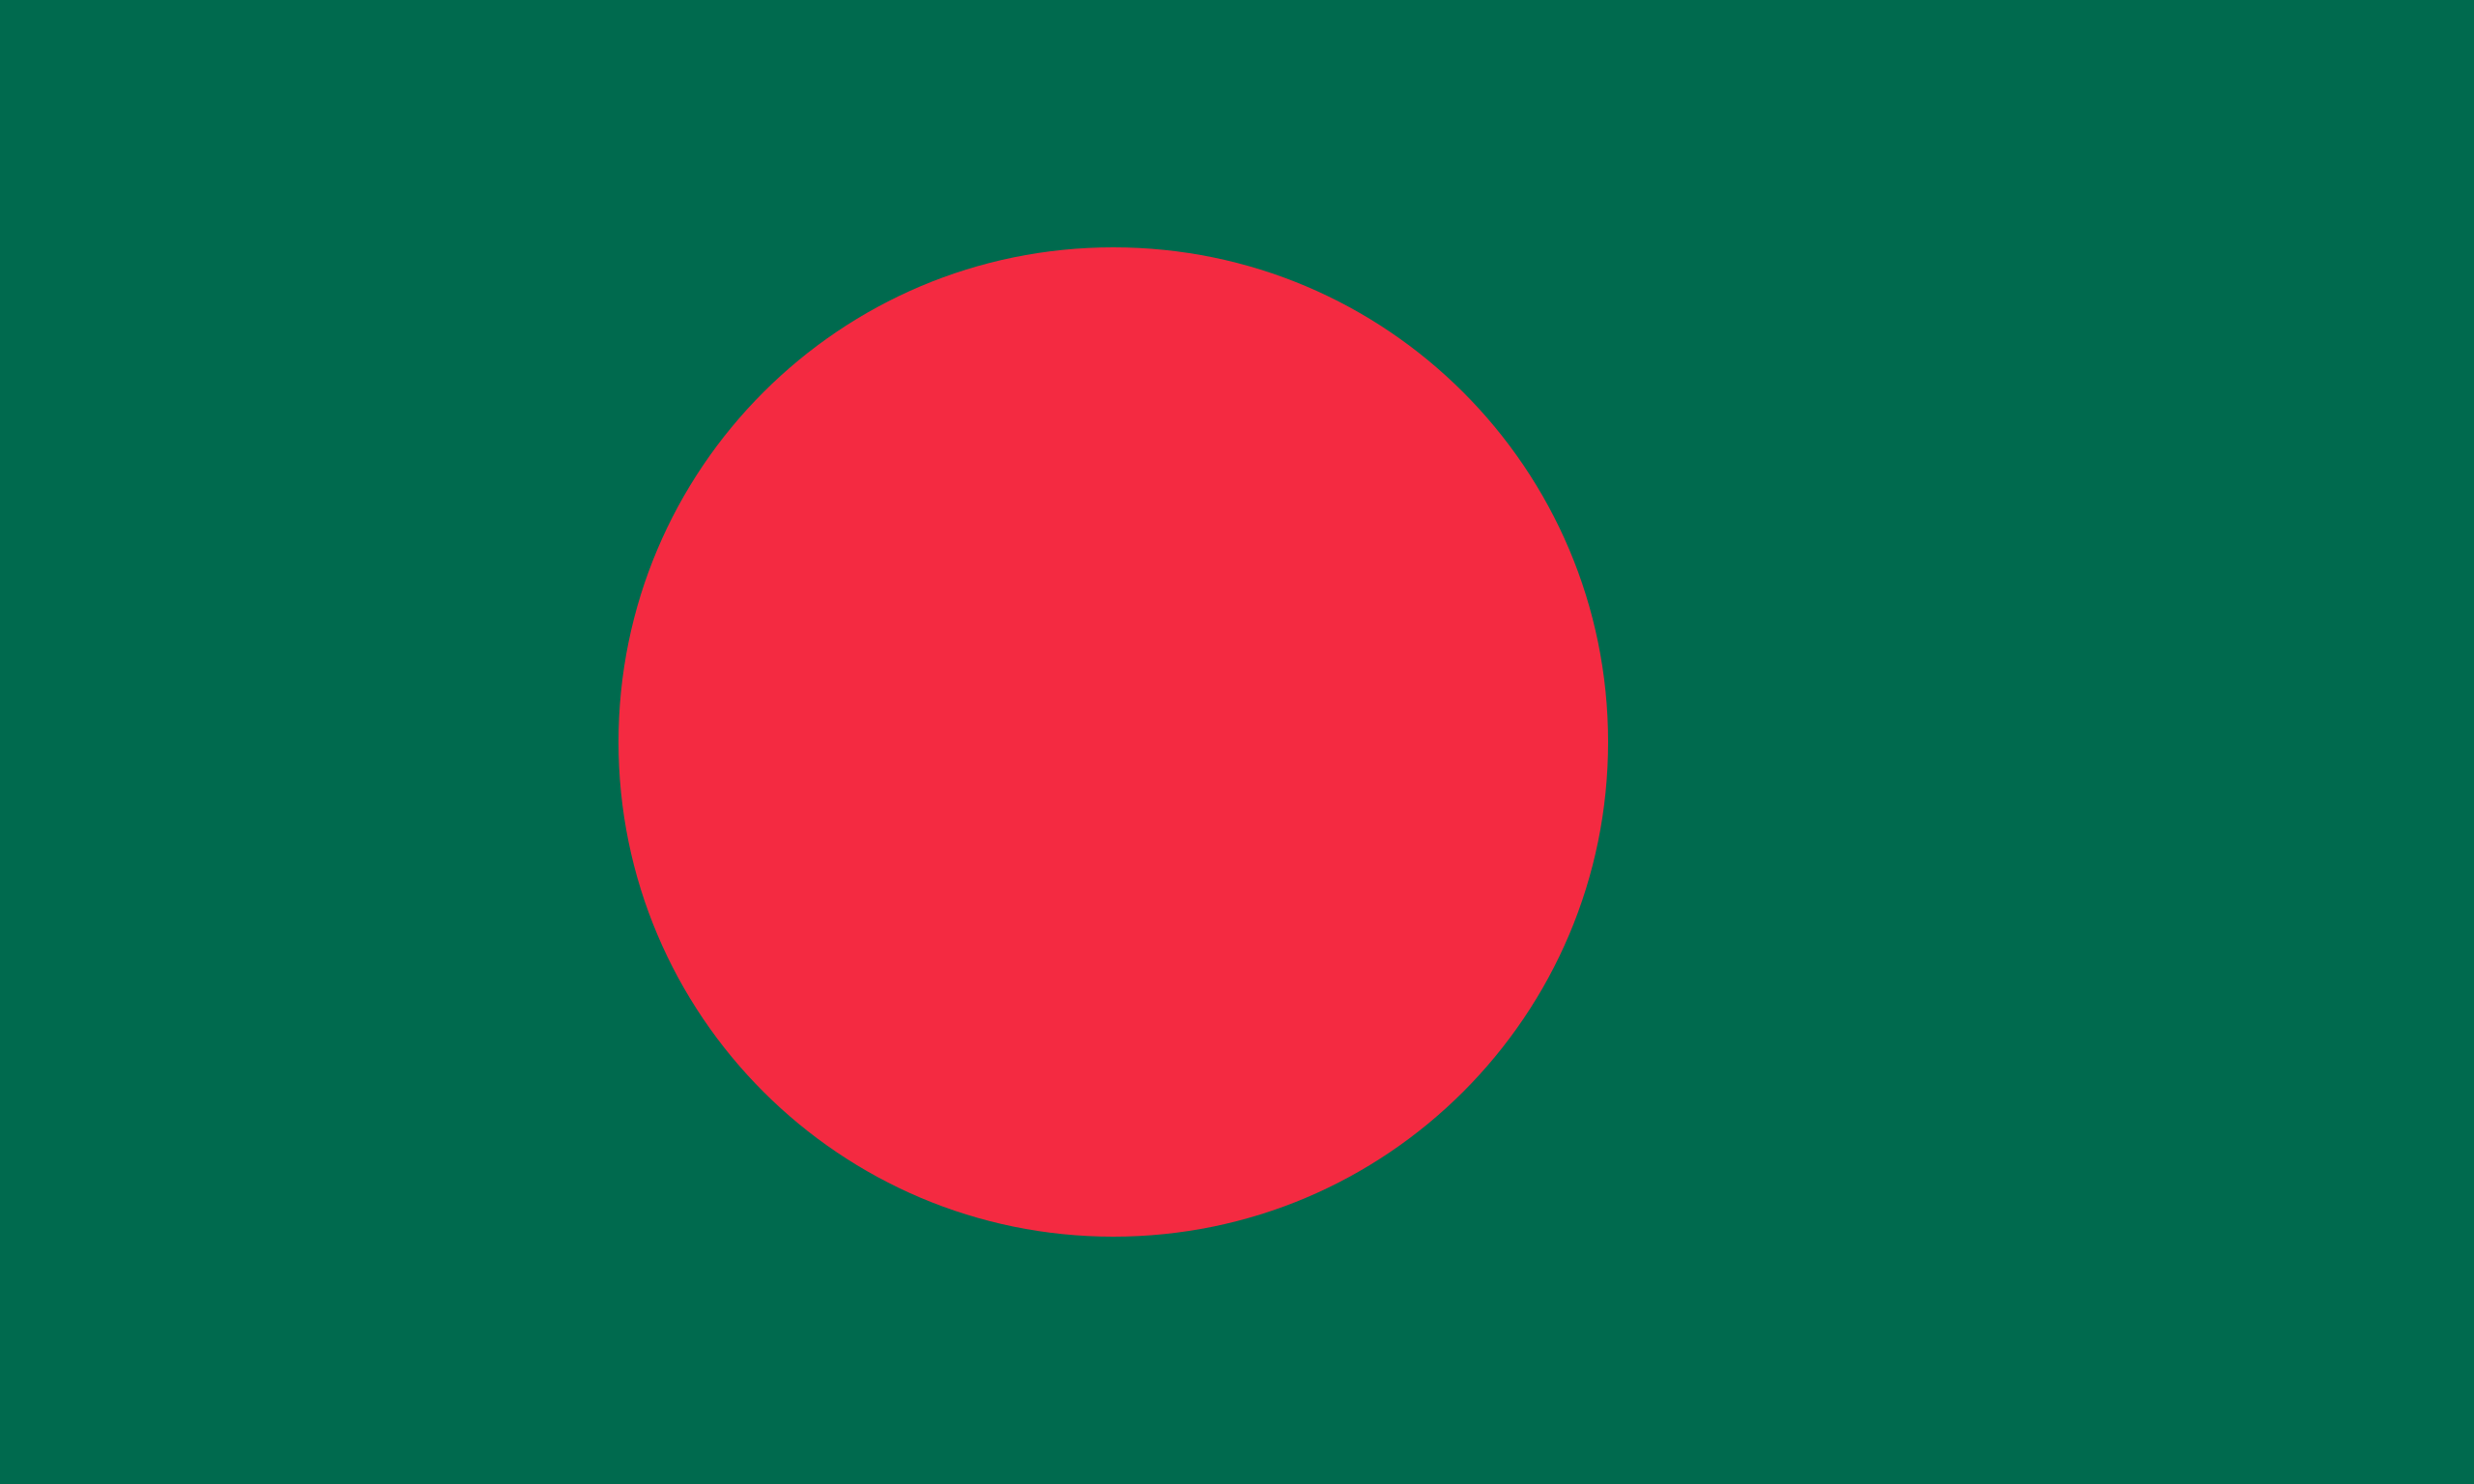 Bangladesh Flag Color Codes - Flag Color - Hex, RGB, CMYK